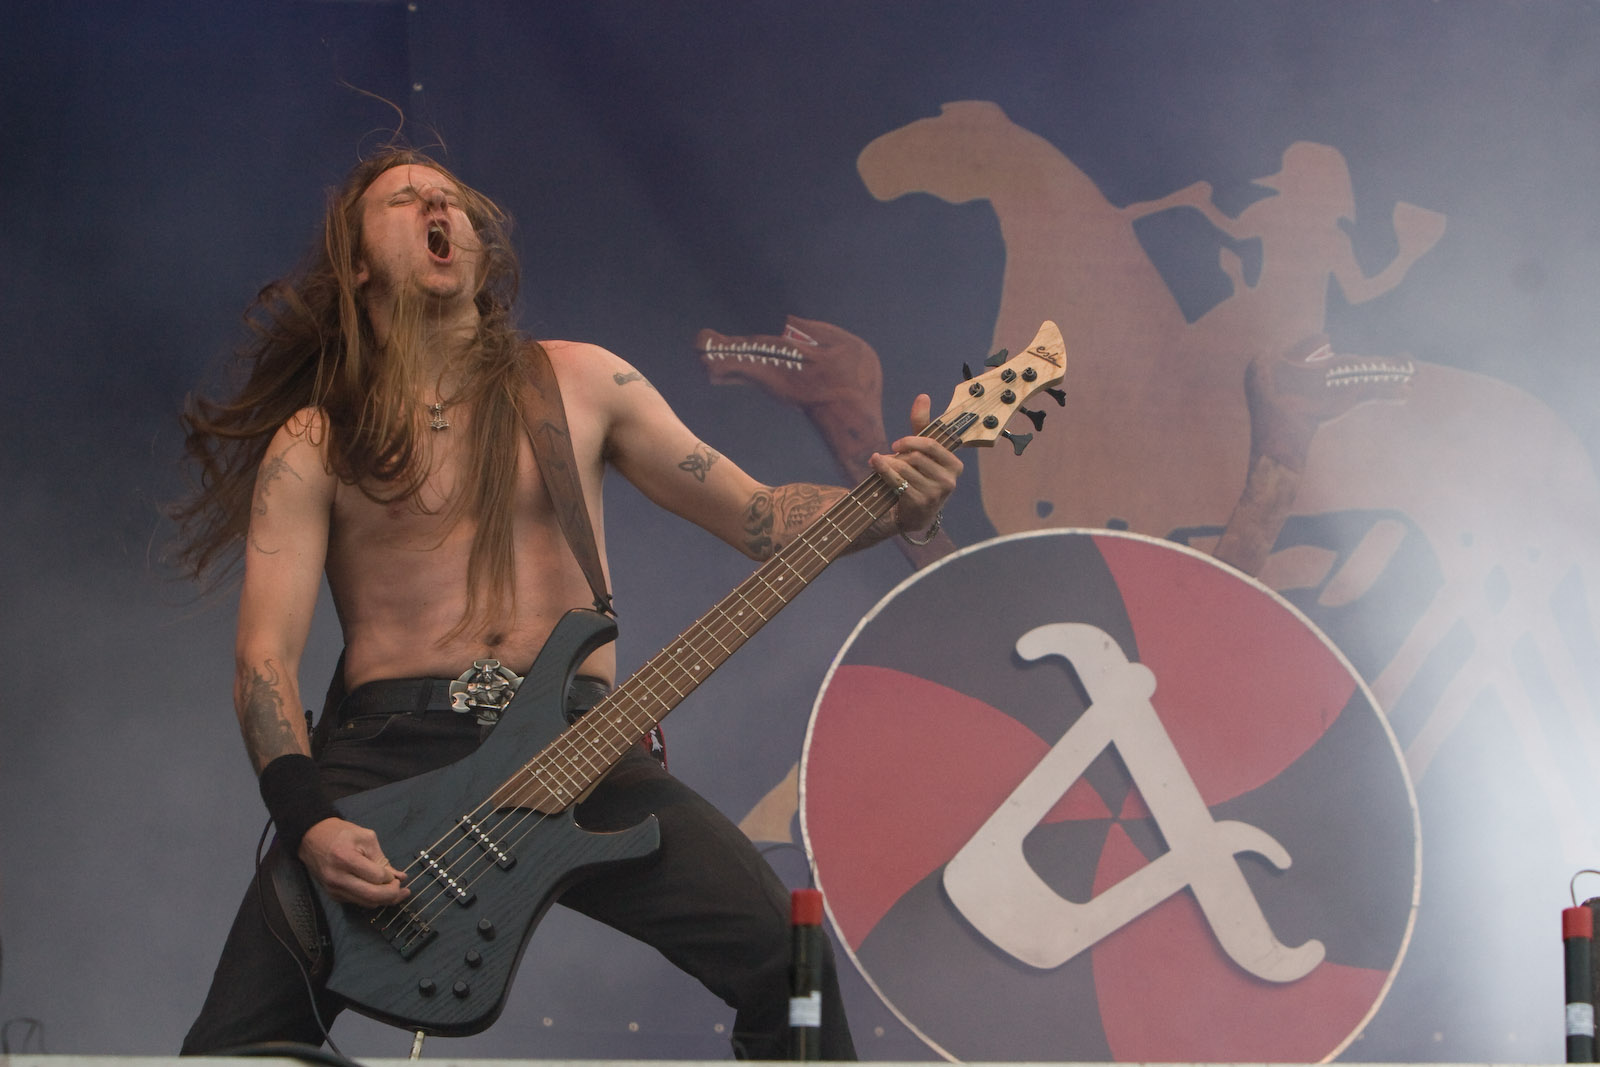 http://upload.wikimedia.org/wikipedia/commons/a/ac/Amon_Amarth-1001-Ted_Lundstr%C3%B6m.jpg